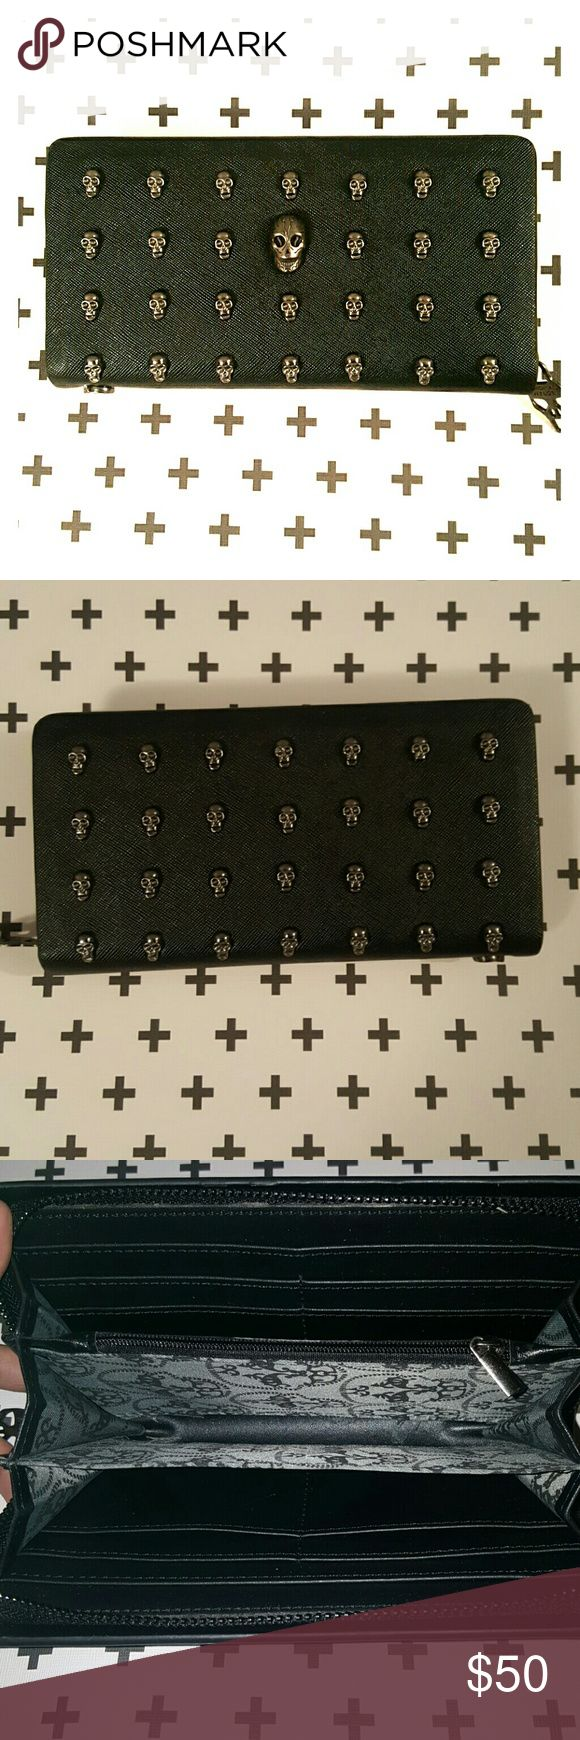 Thomas Wylde black mini skull studded *FINAL* FIRM New!!!! Perfect condition. I never used it. It's black with metal little skulls all over the wallet. Has 12 credit card slots and 4 separators in the wallet. It zips all the way around. NWOT Thomas Wylde  Bags Wallets